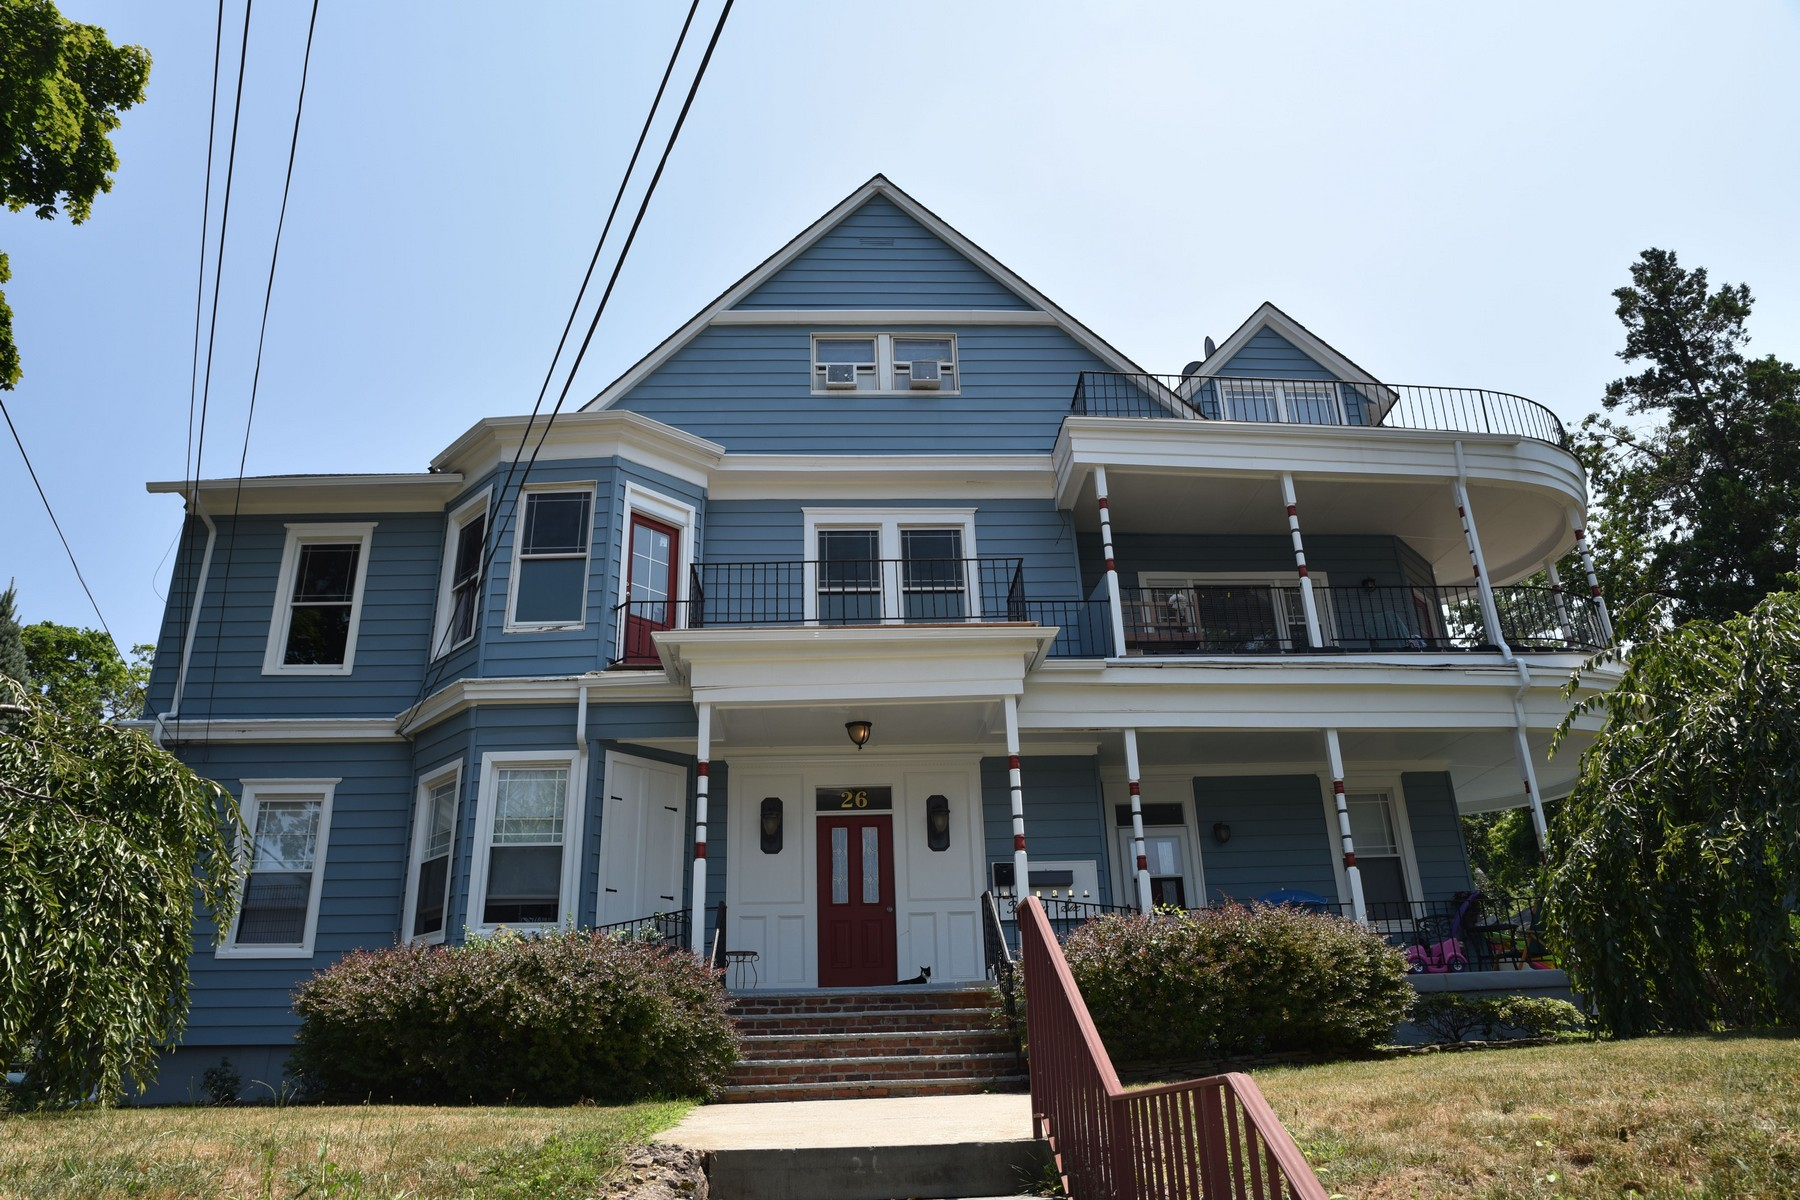 Multi-Family Homes для того Продажа на Gracious Victorian Beauty 26 6th Ave, Atlantic Highlands, Нью-Джерси 07716 Соединенные Штаты